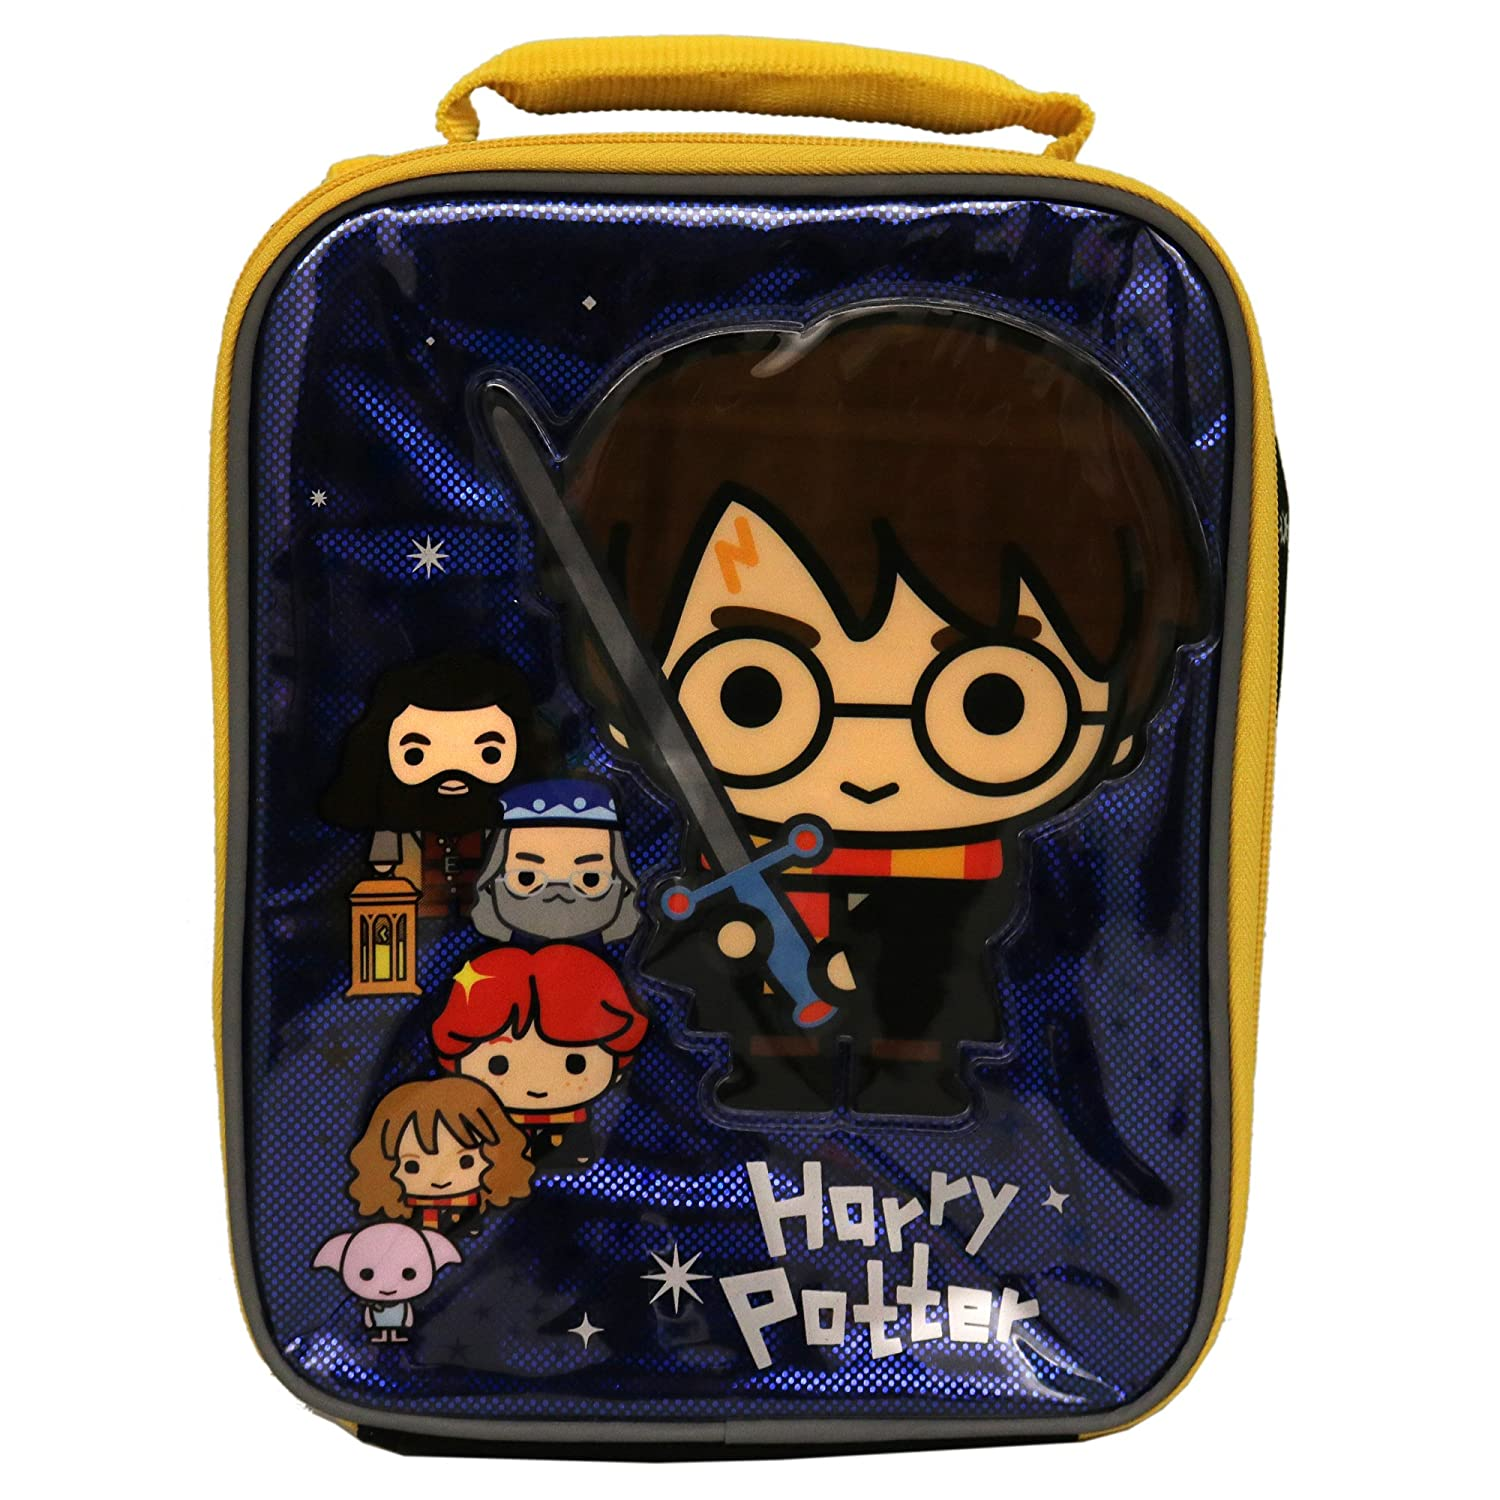 Harry Potter Lunch Box Soft Kit Insulated Bag Chibi Hogwarts Accessory Innovations